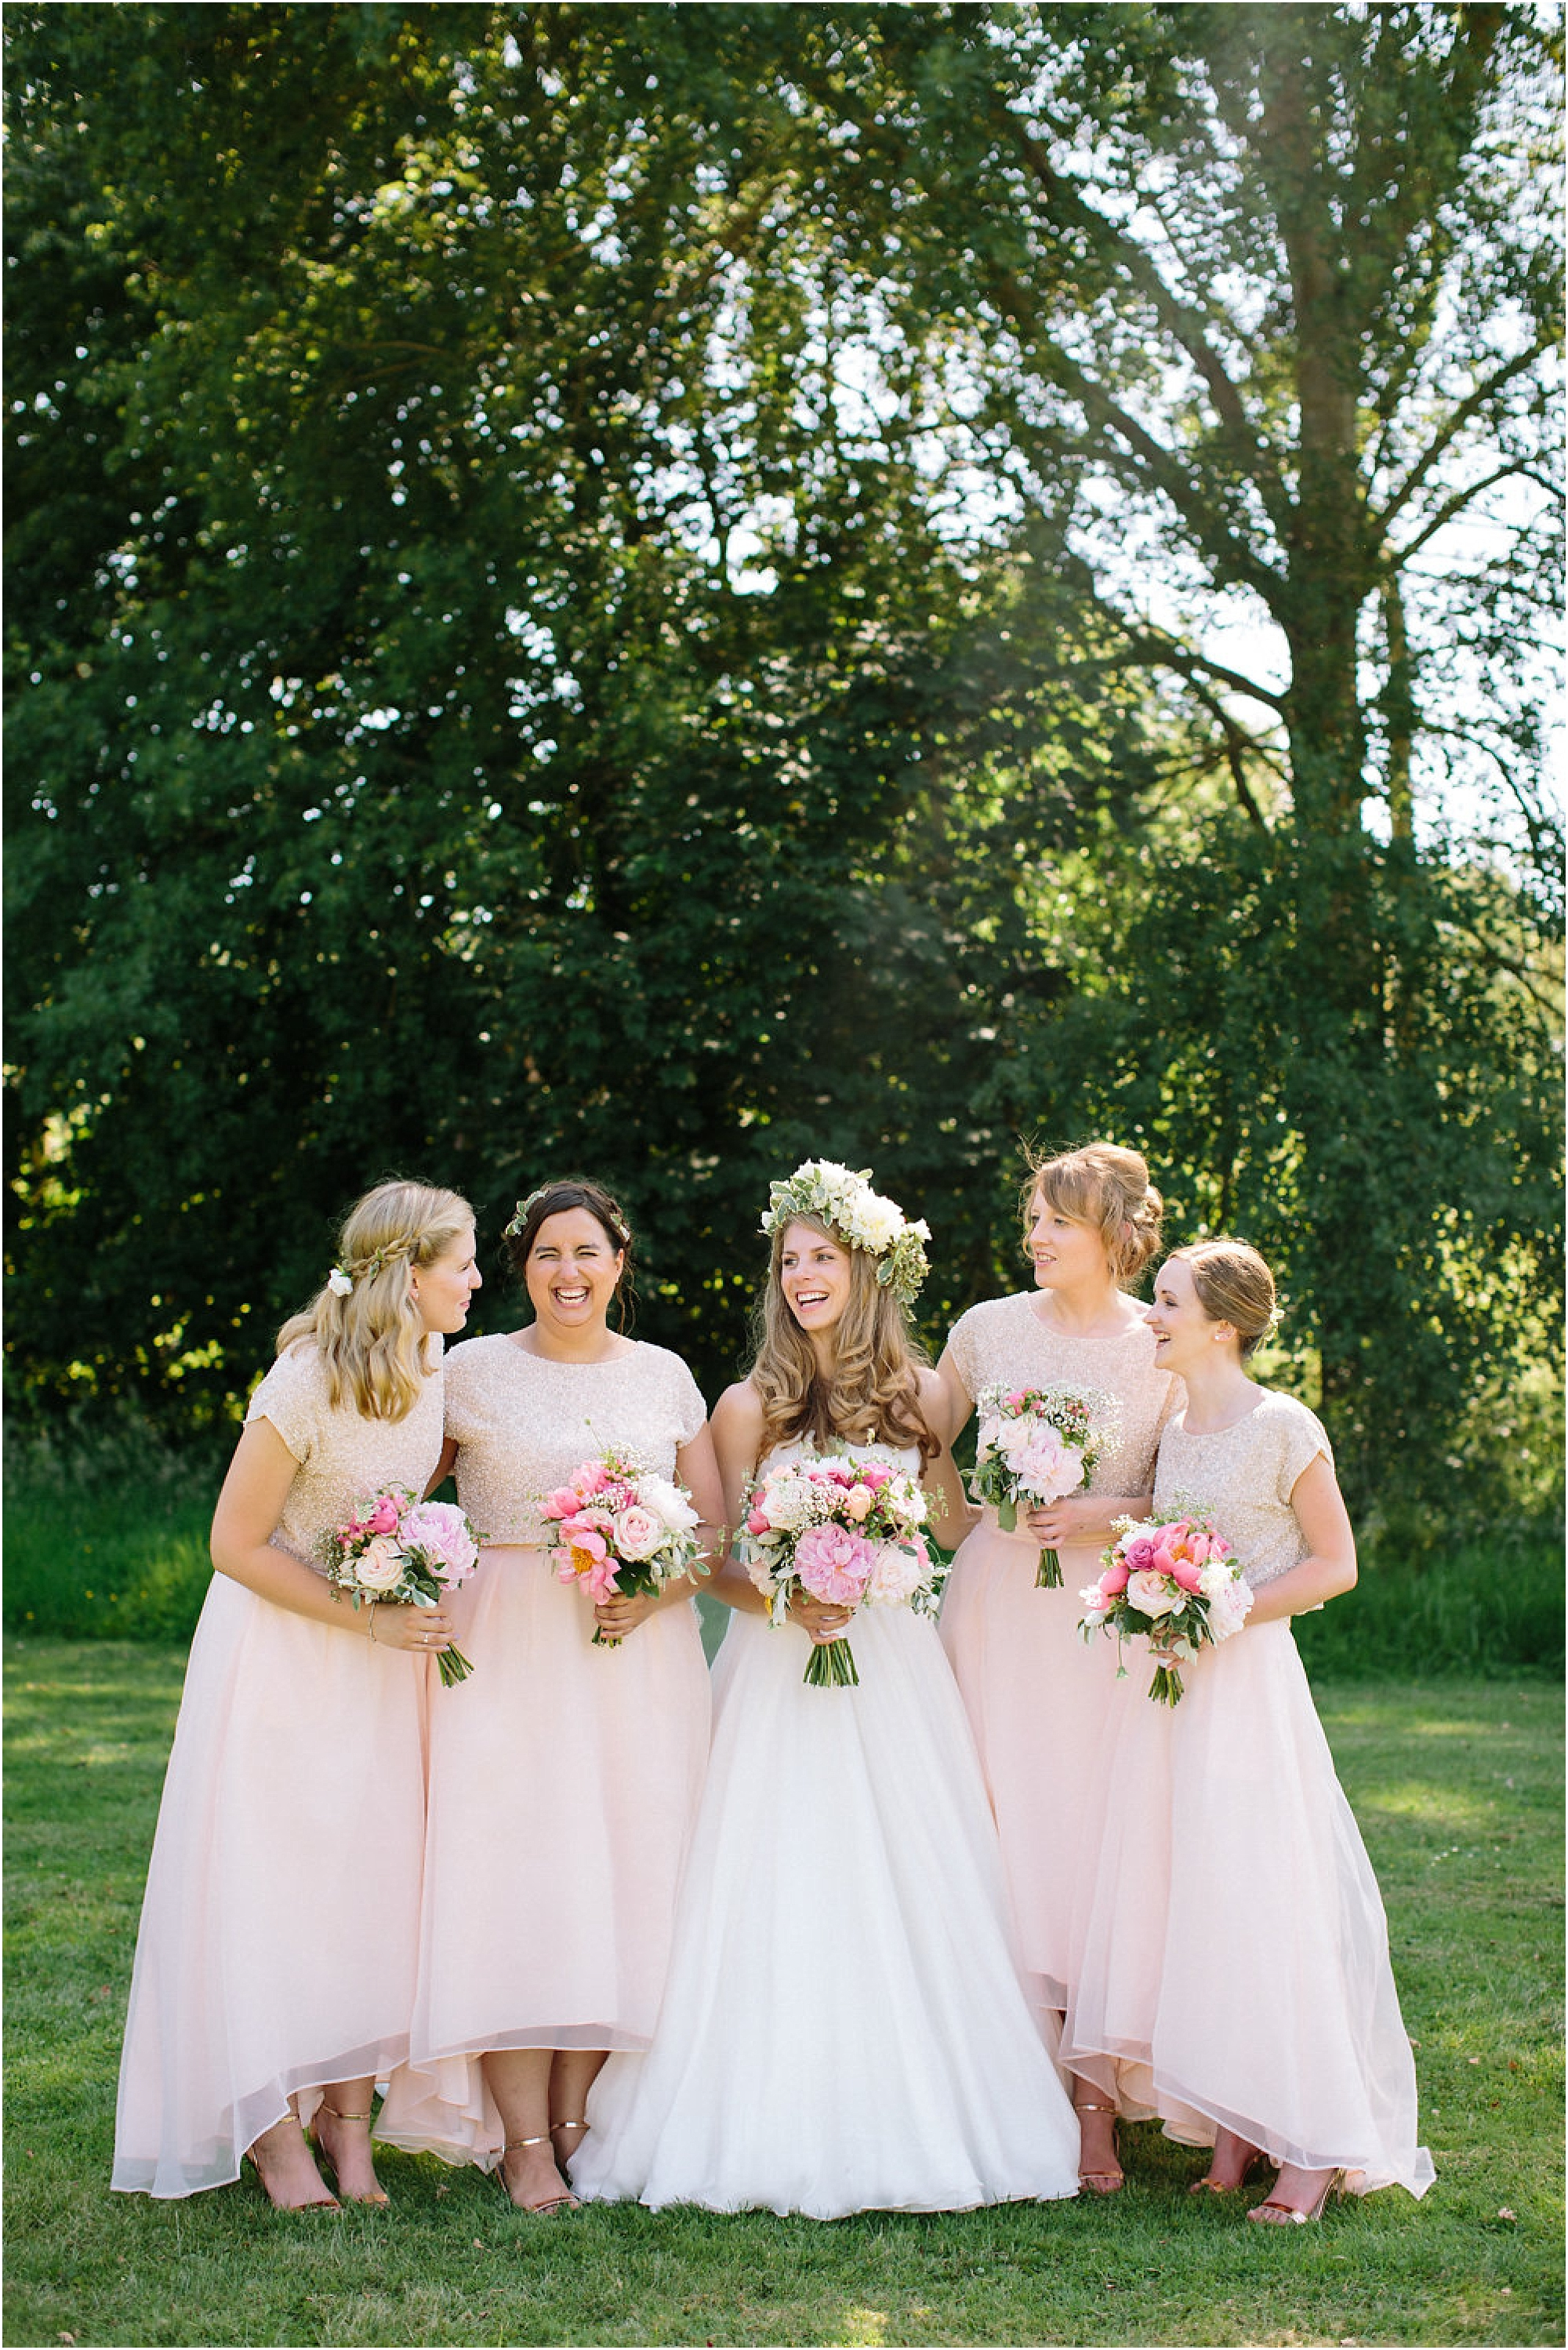 Bridesmaids in blush two piece dresses